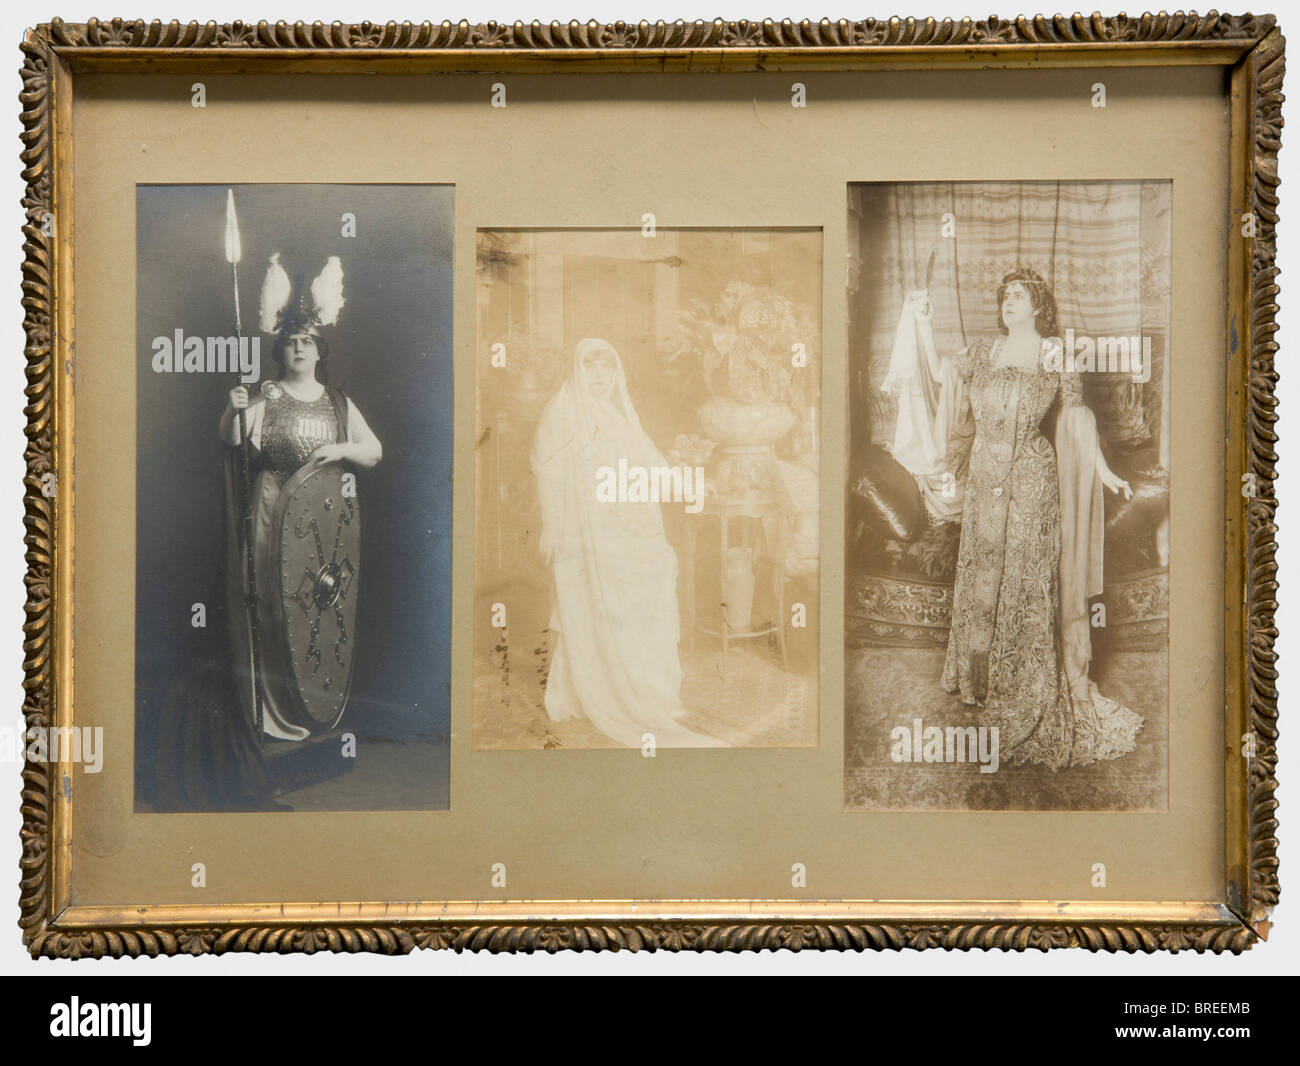 Publicity Still Stockfotos & Publicity Still Bilder - Alamy